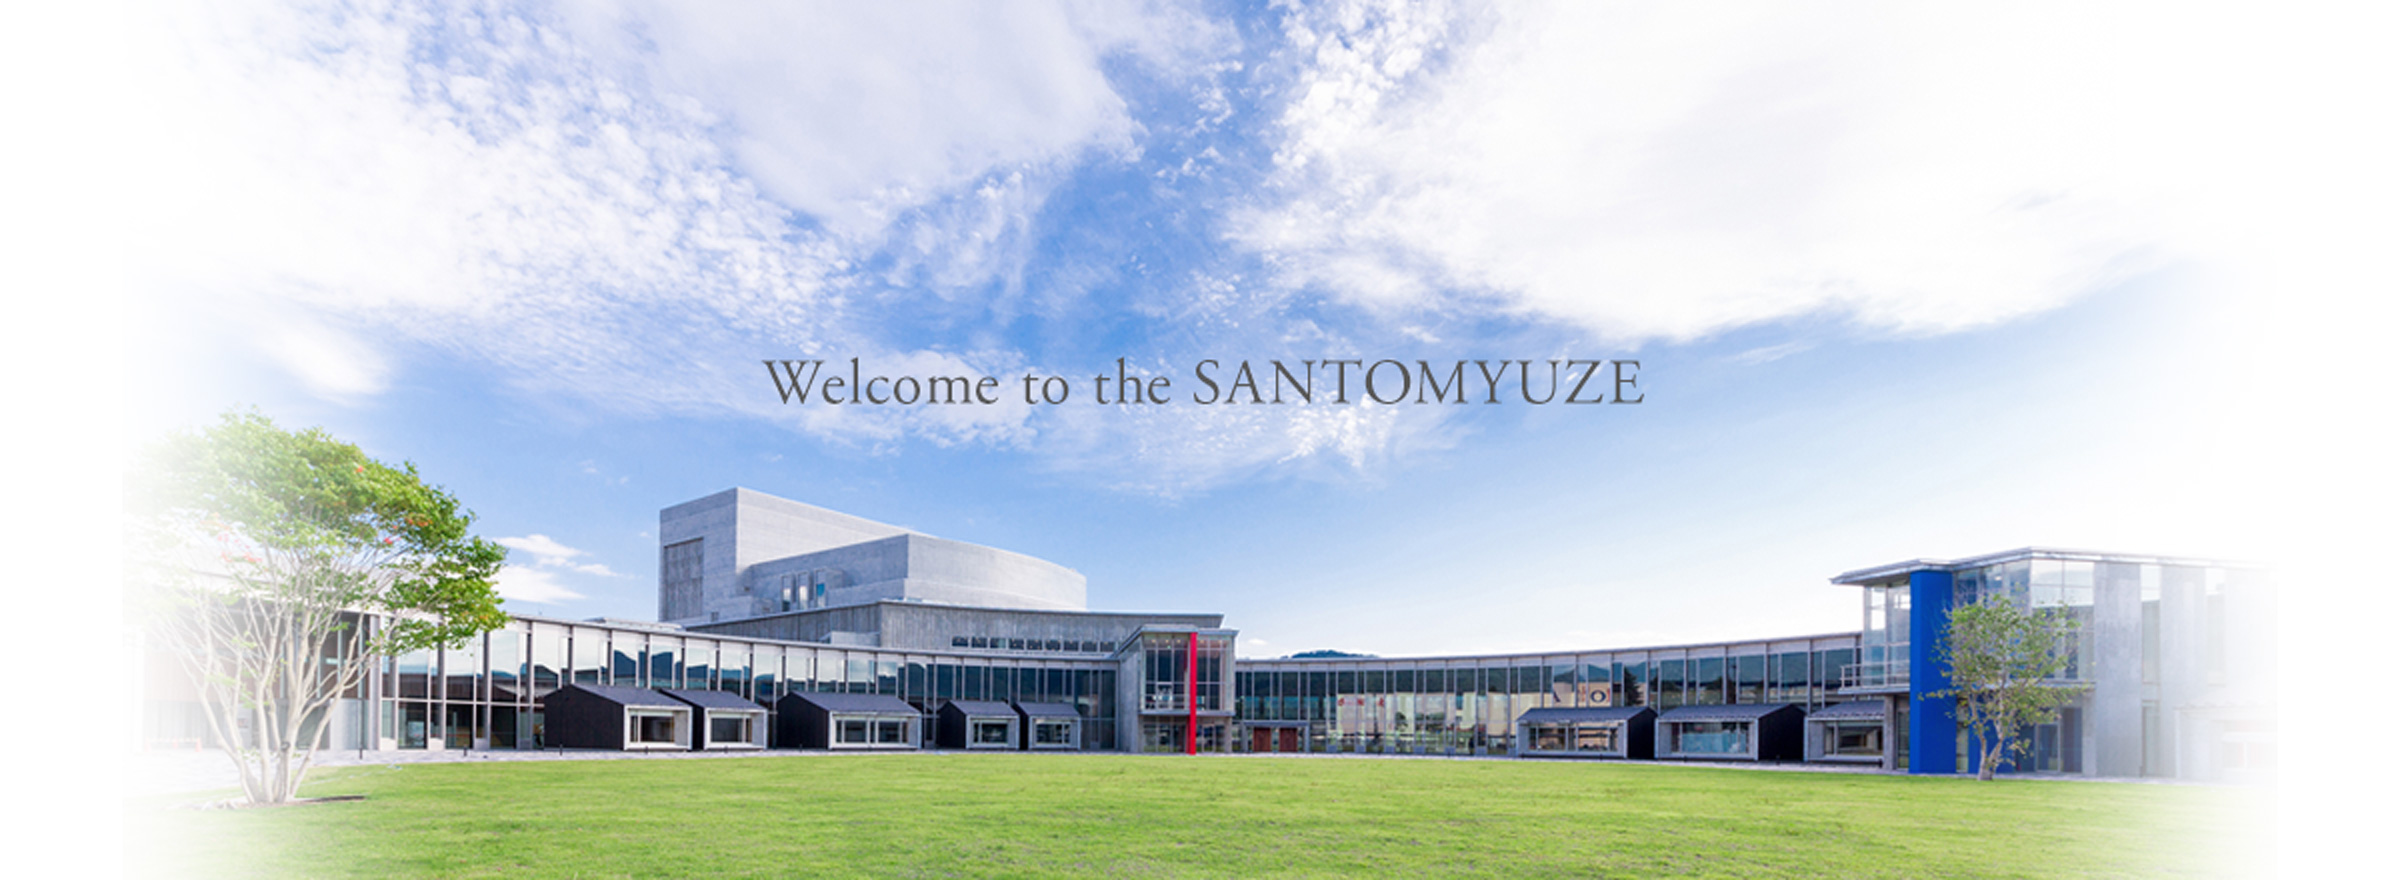 Welcome to the SANTOMYUZE